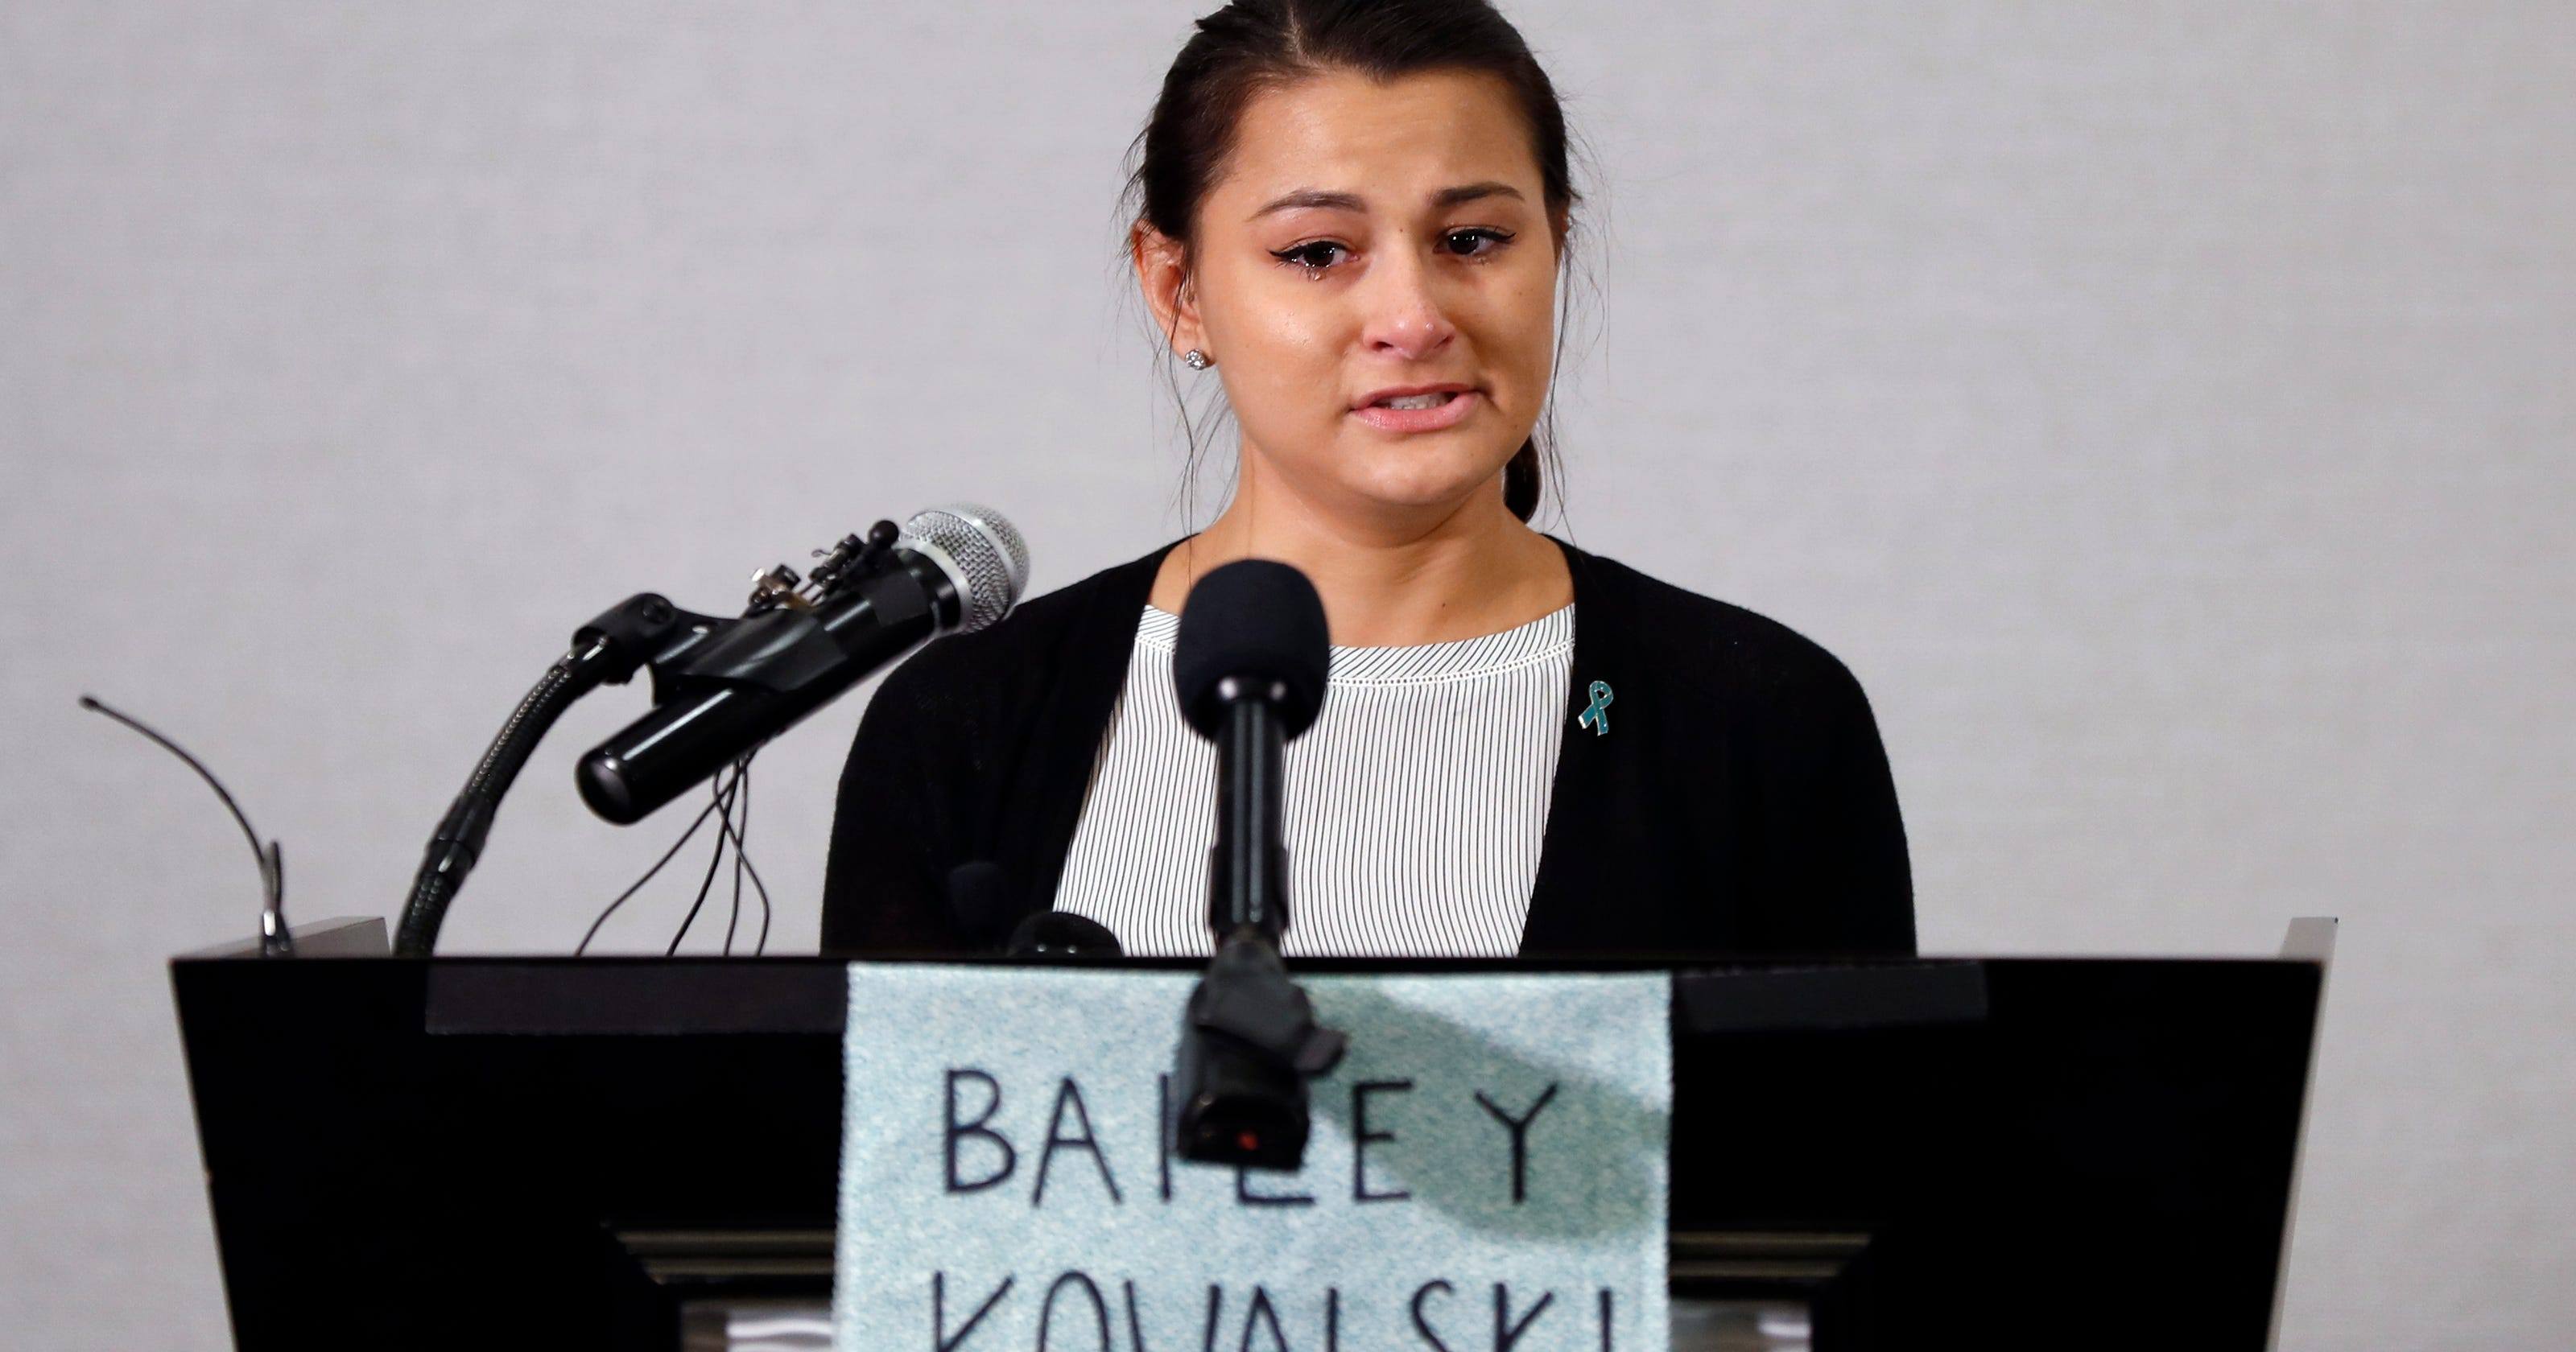 Woman Who Alleged Rape By Ex-MSU Players Speaks Publicly